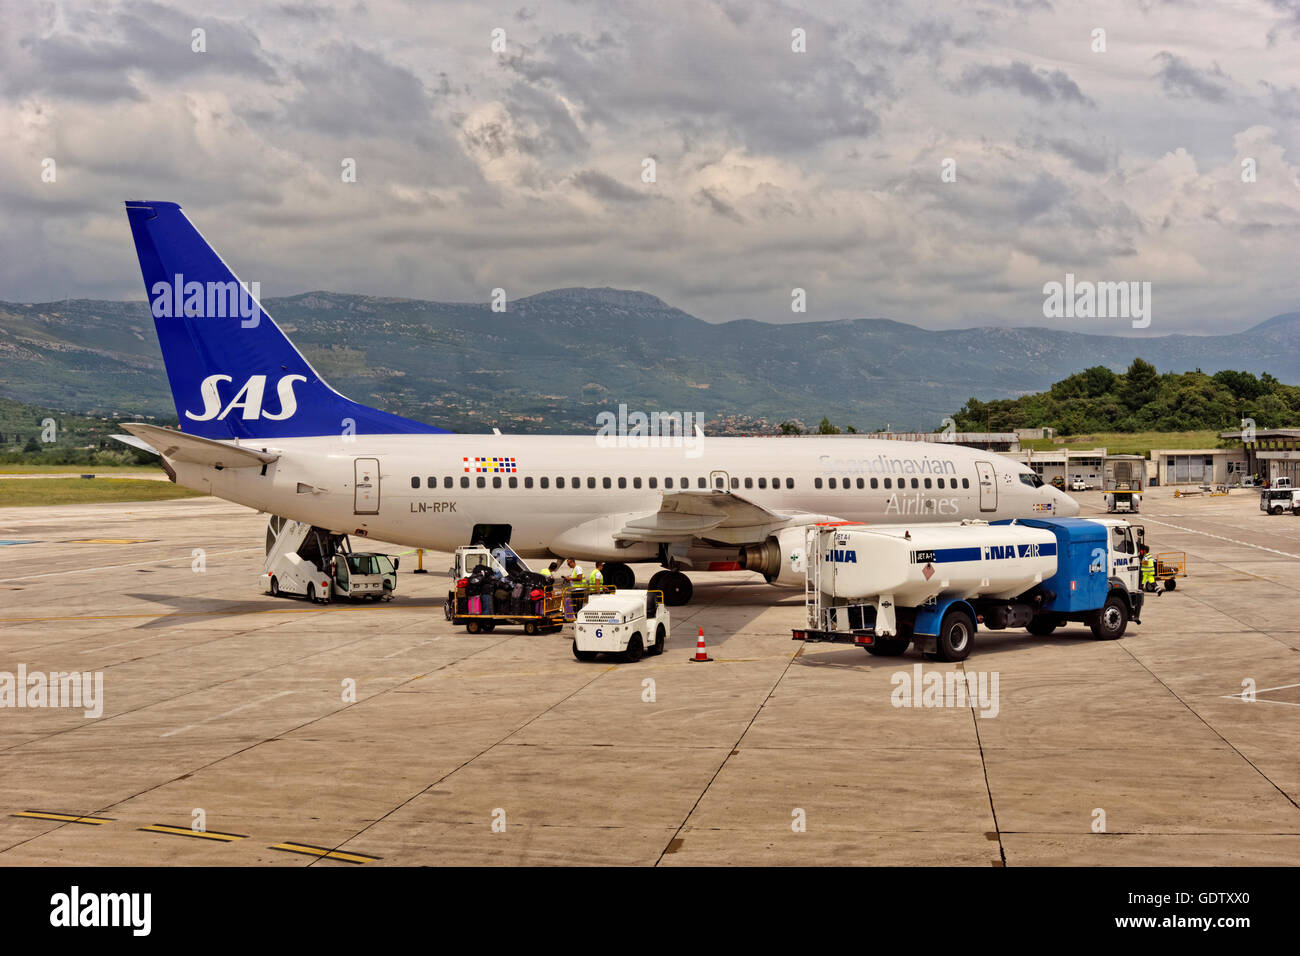 Scanidinavian Airlines System(SAS) Boeing 737-783 aircraft LN-RPK, 'Heimer Viking' on the apron at Split - Stock Image